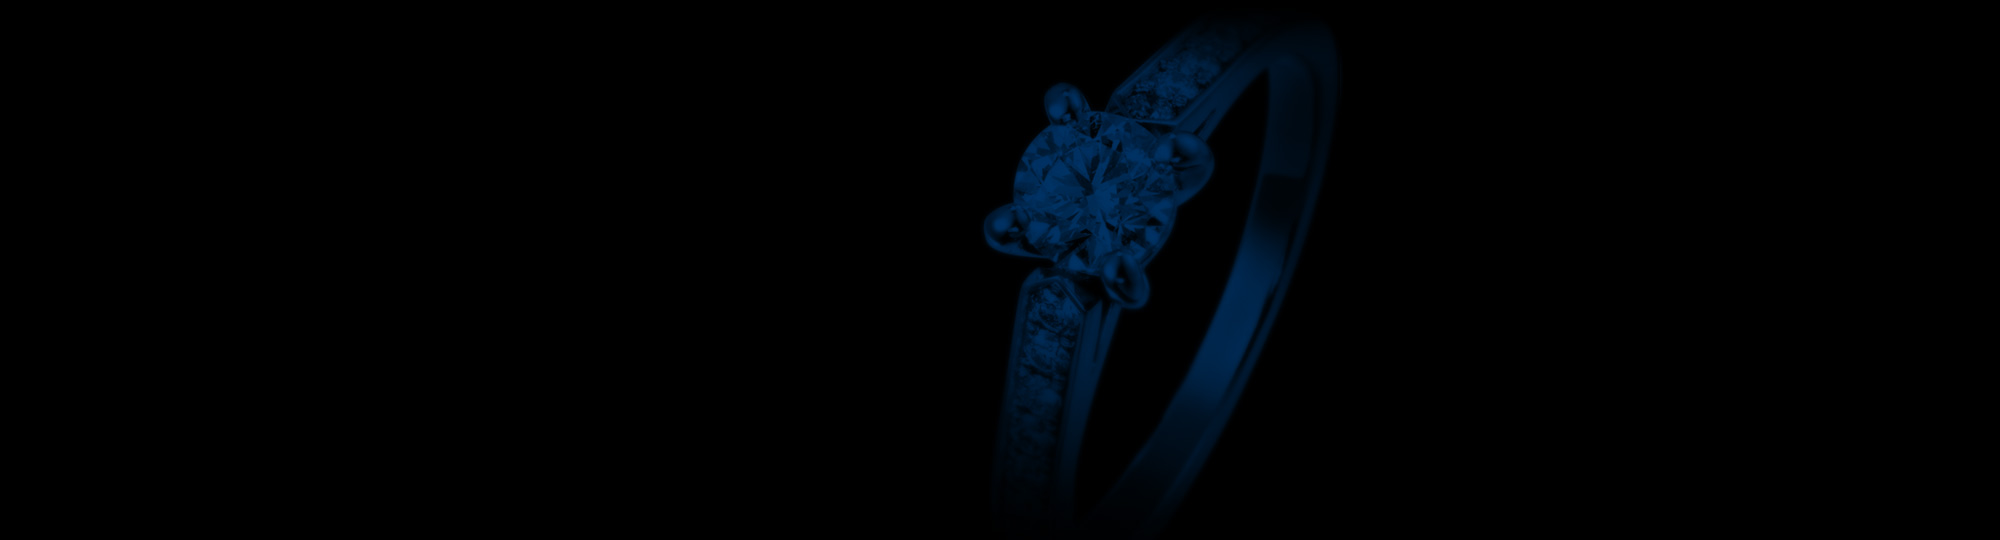 Wedding Ring & Engagement Ring - Piaget Luxury Jewellery Official Website